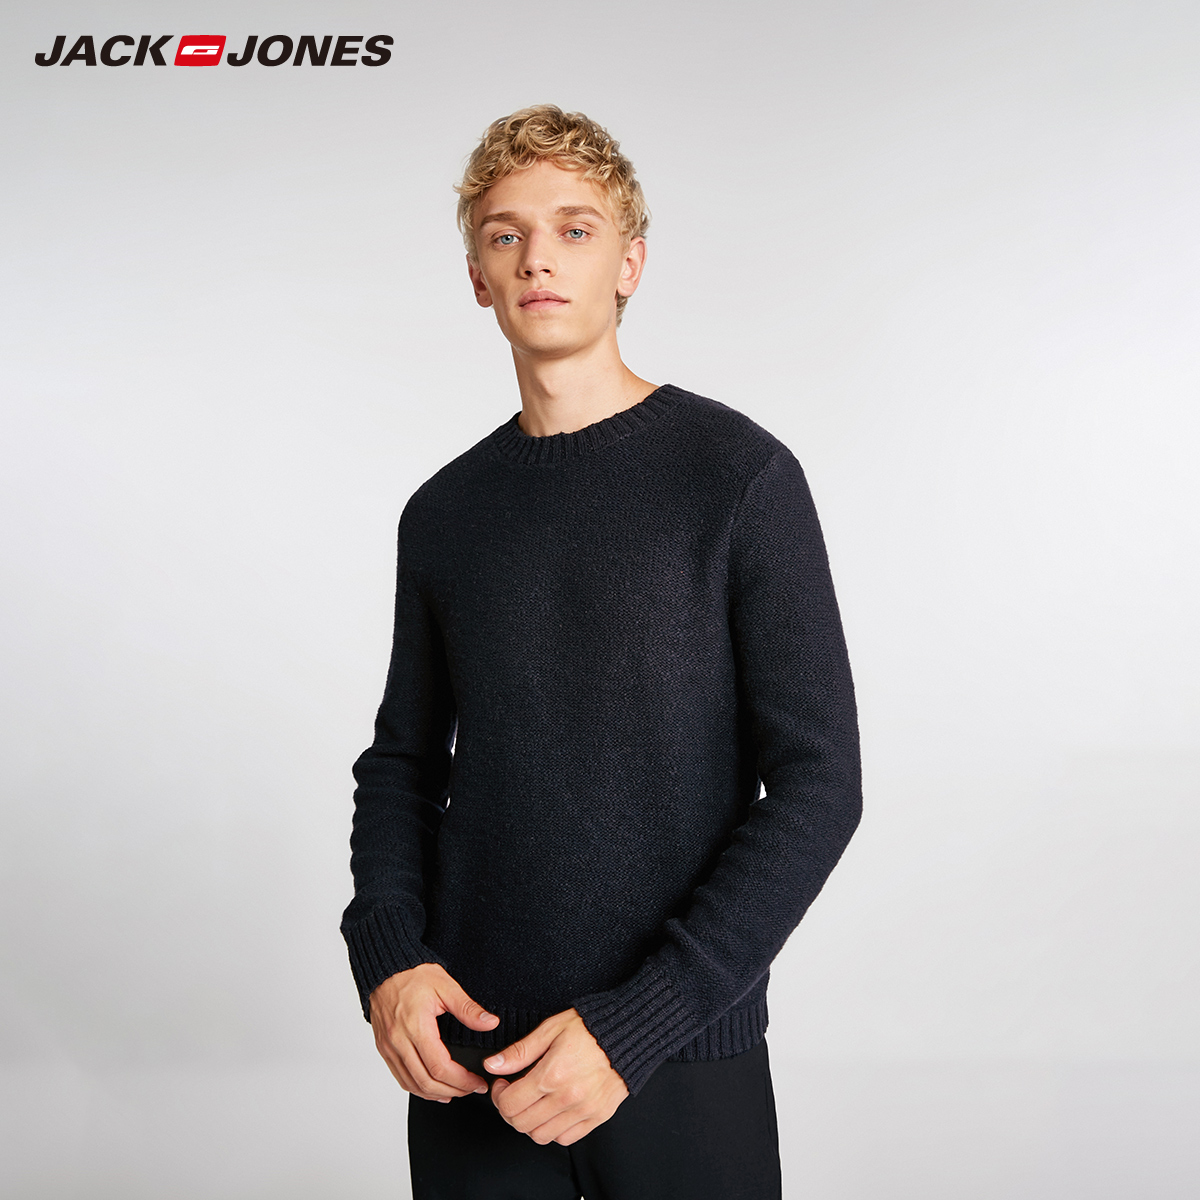 JackJones Men's Basic Solid Colour Wool Fabric Sweater 218425528